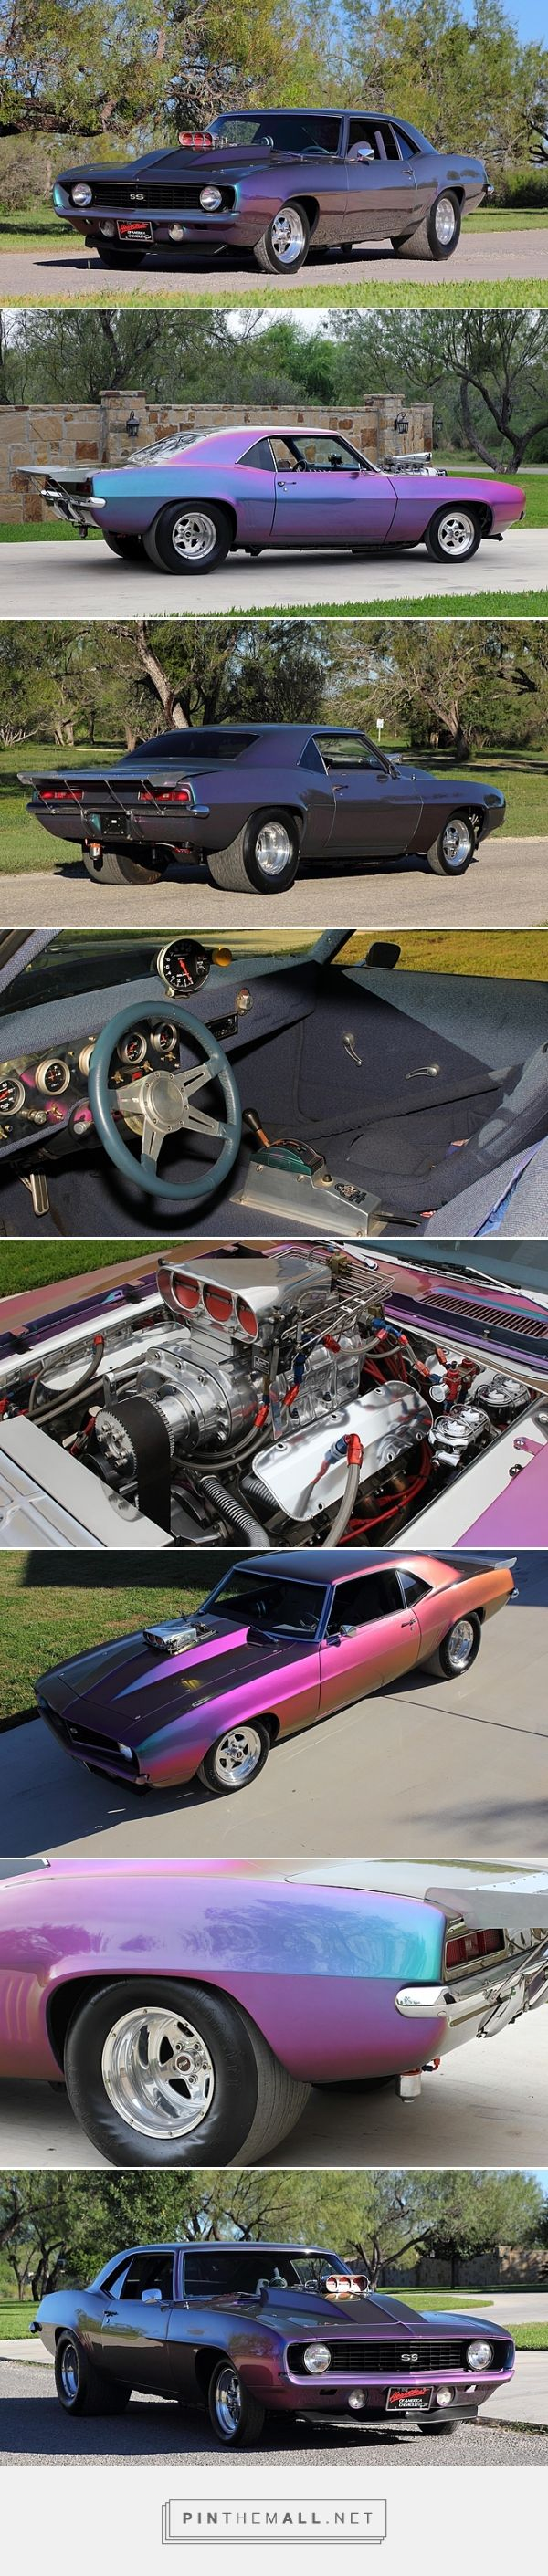 1969 Chevrolet Camaro Race Car Supercharged 497 CI, Chromalusion Paint  - The previous owner claimed that over $100,000 was invested and it ran the 1/4 mile in 8.6 seconds  - 497 CI big block engine  - 871 blower  - Alcohol injection  - 6 point roll cage  - Back halfed and fully tubbed  - Fiberglass cowl hood  - Powerglide transmission with trans brake  - Front disc brakes with line lock  - Everything under the hood is chromed or polished  - Custom Blue tweed interior  - Stainle...